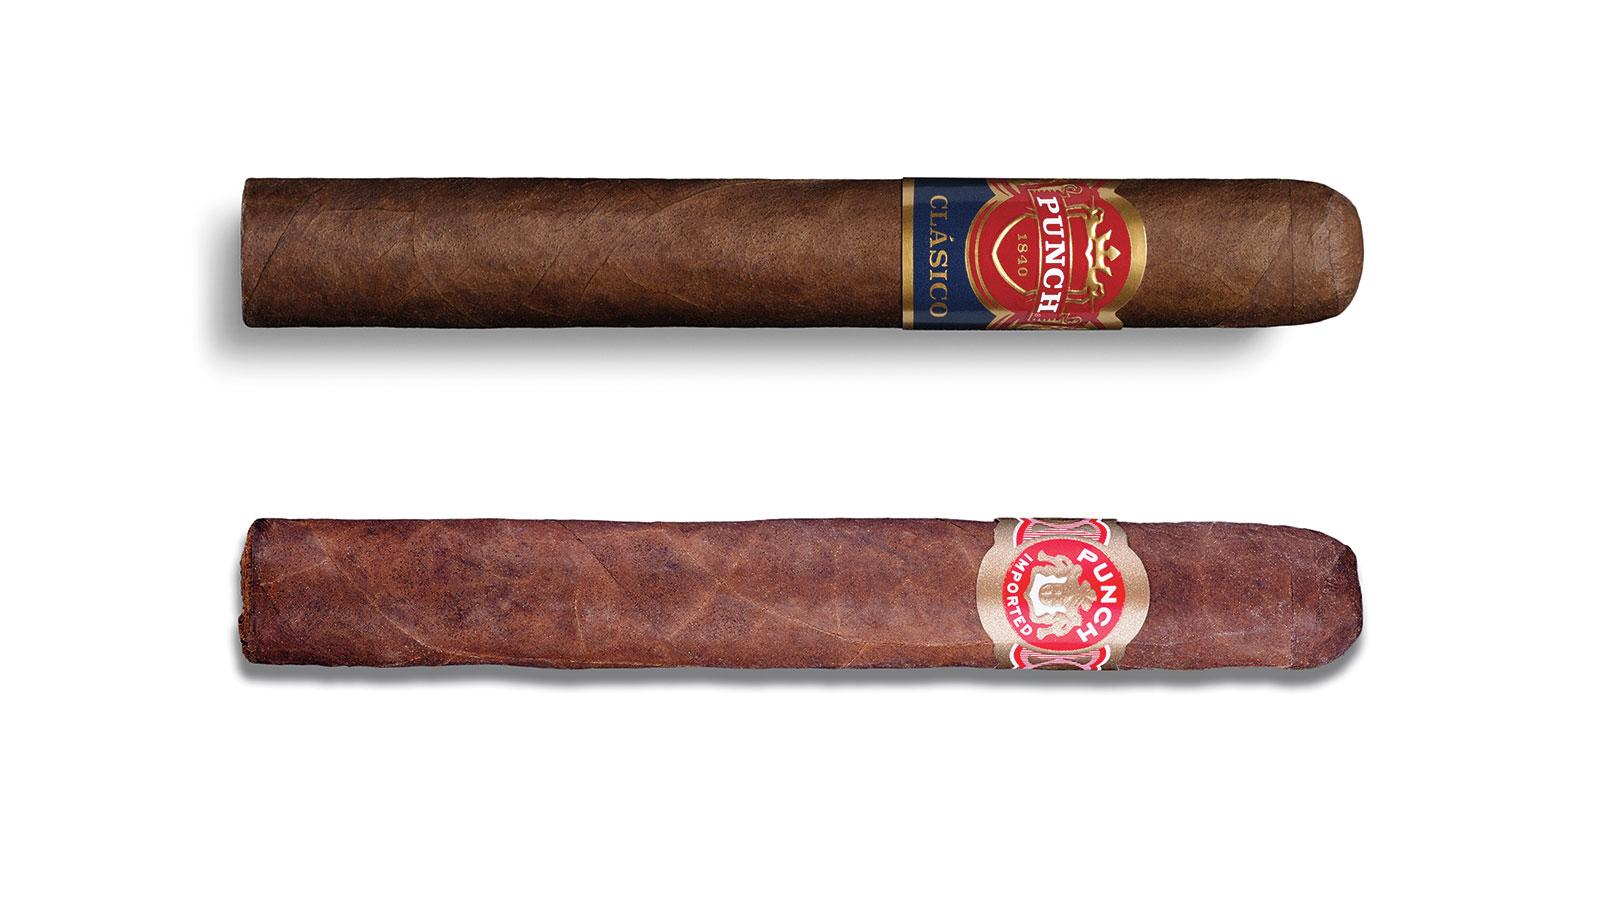 Side by side comparison of old and new Punch cigar logos.